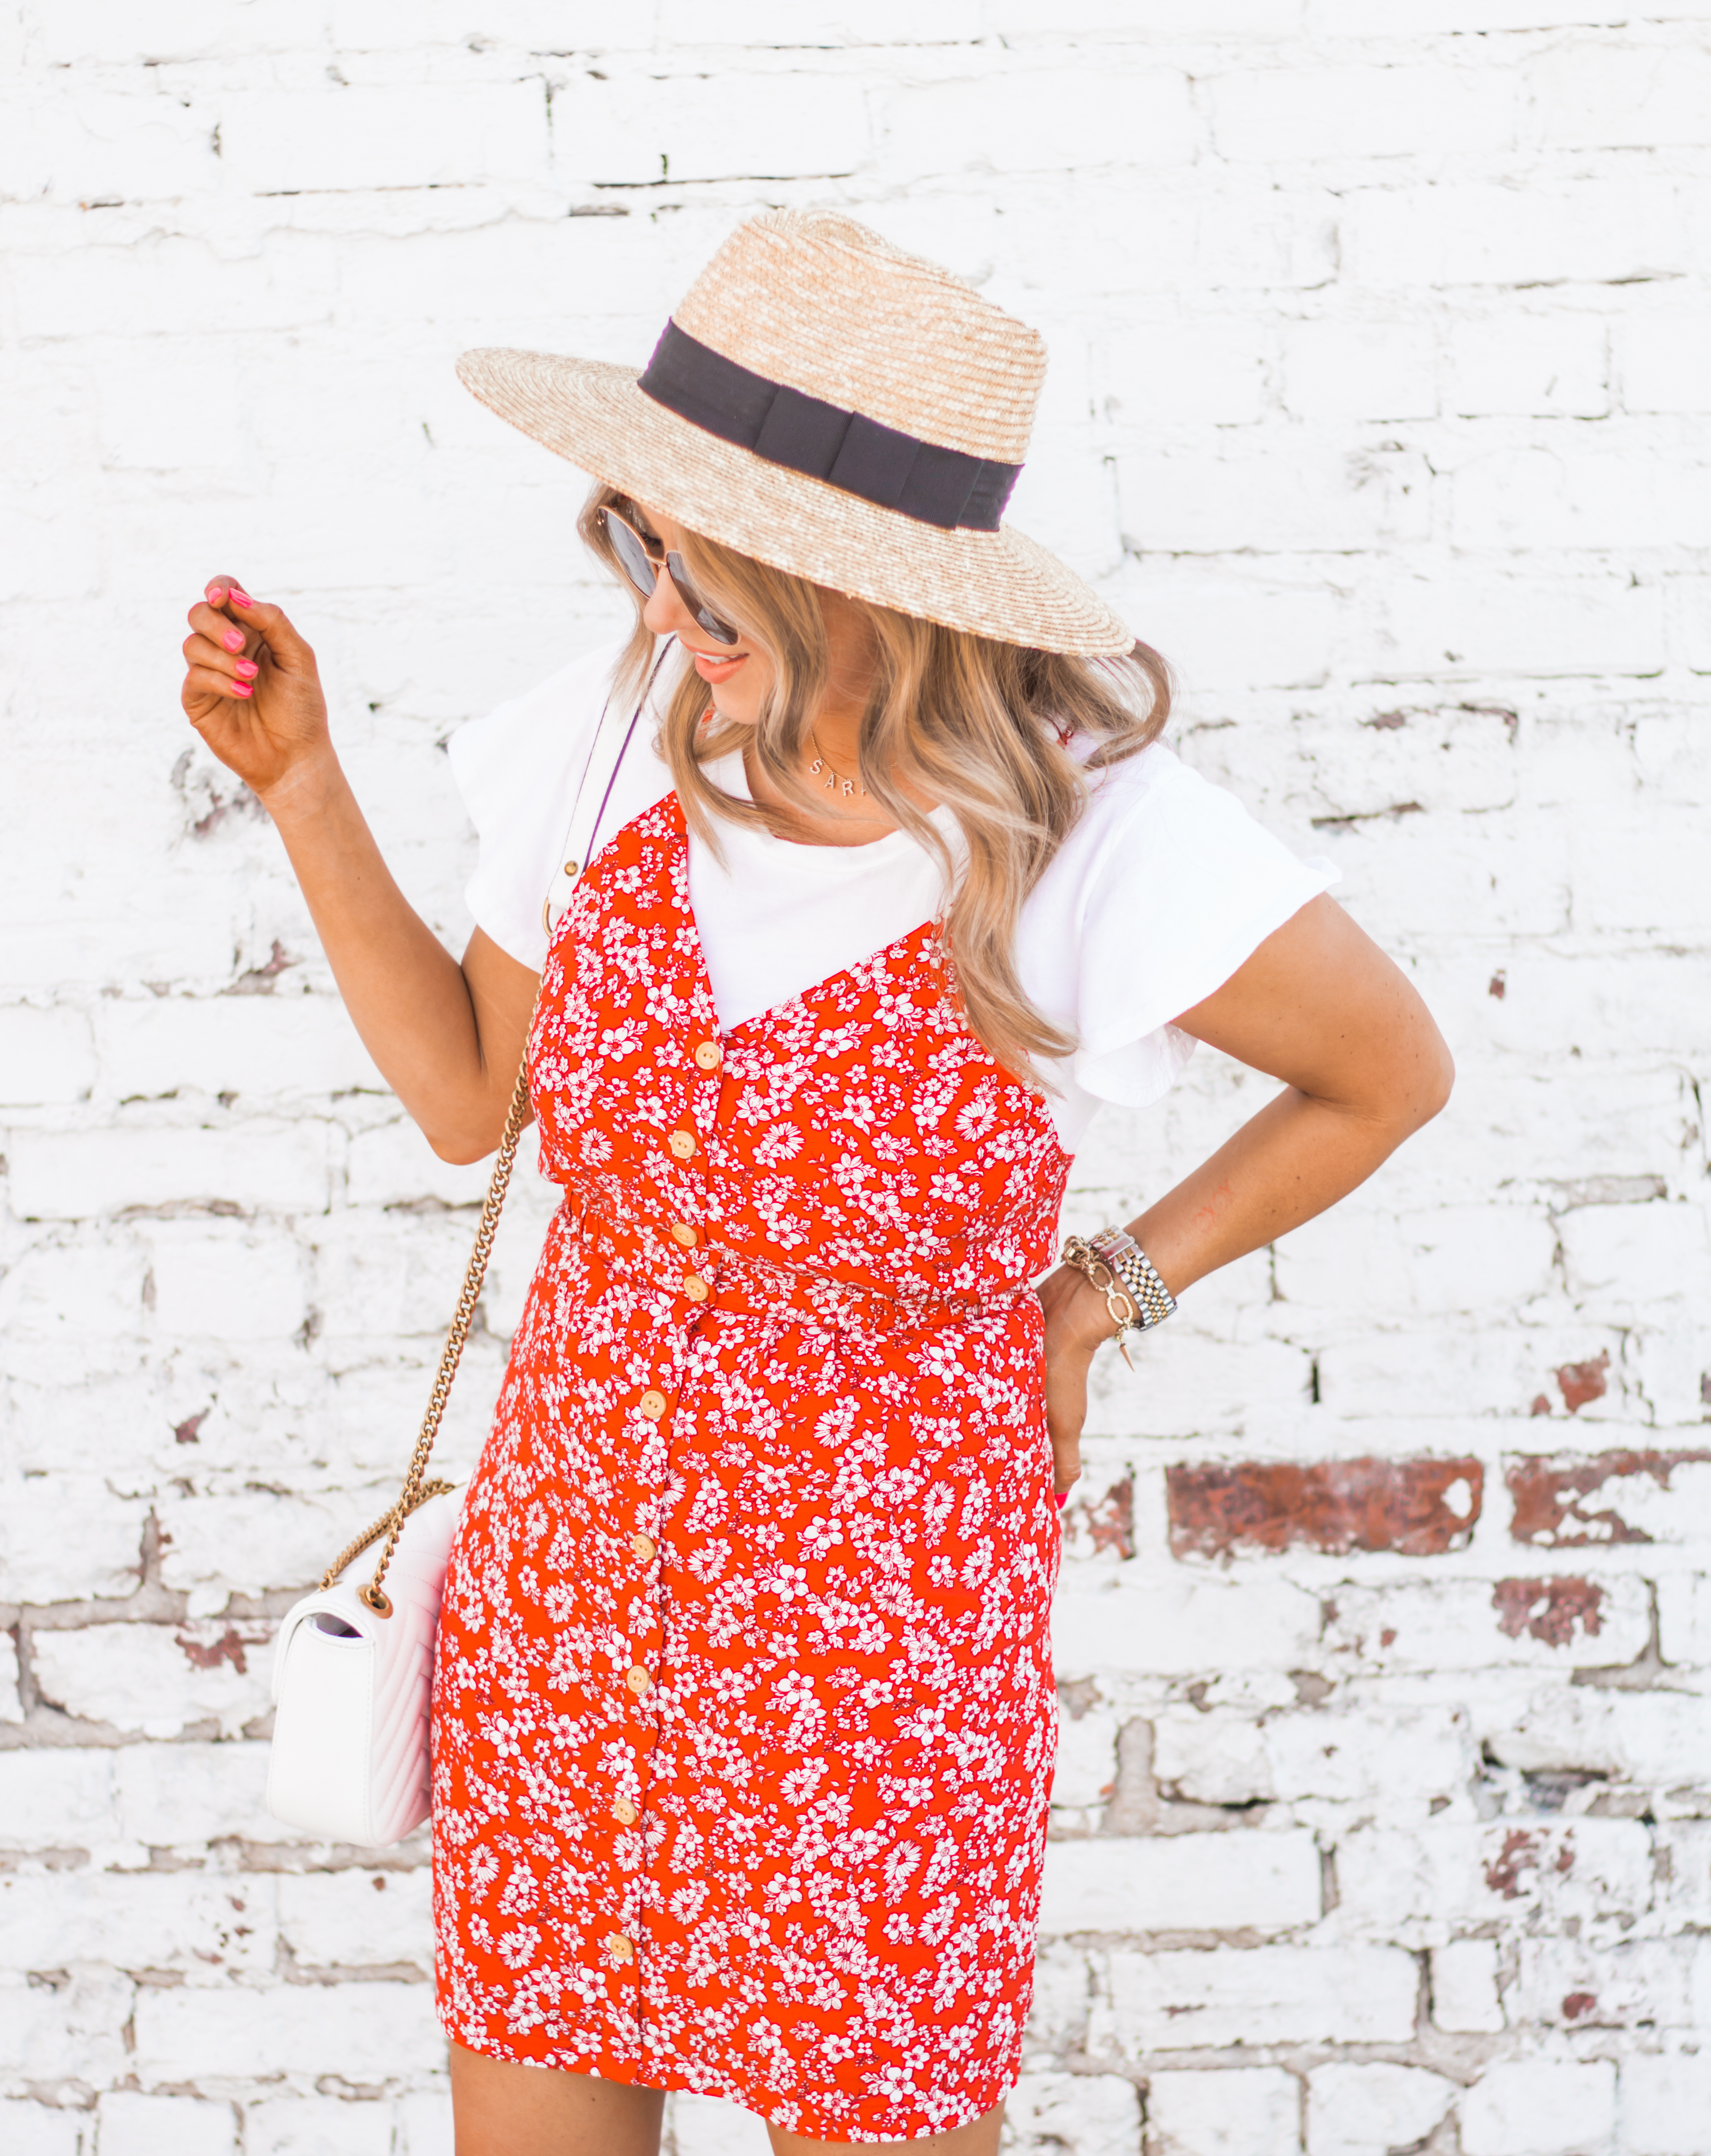 red-sundress-spring-summer-dress-floral dress-women's fashion- spring fashion-summer fashion-brixton hat-white booties-Omaha blogger-sabby style-11